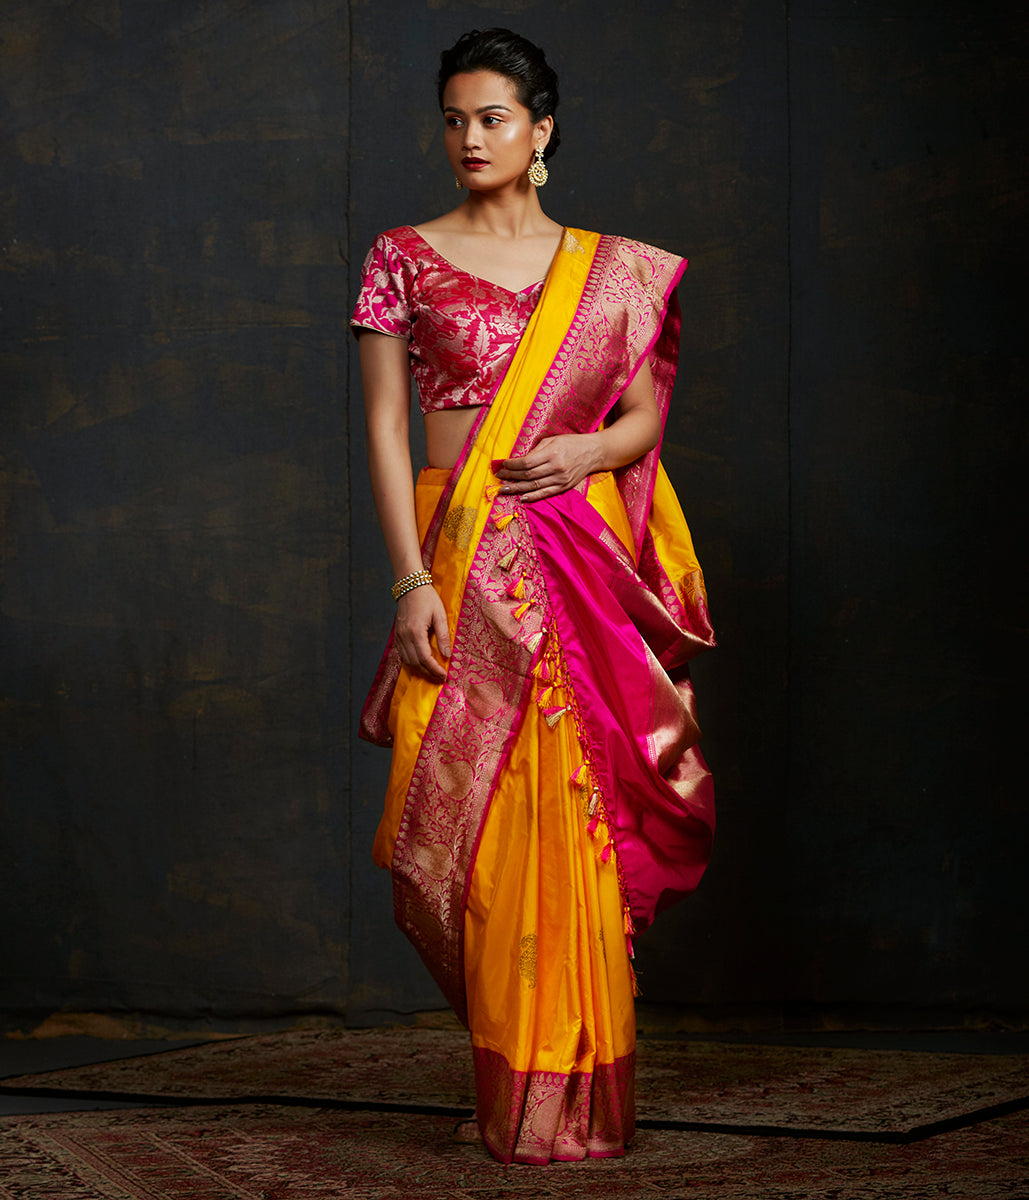 Handwoven kadhwa banarasi saree in yellow with a pink border